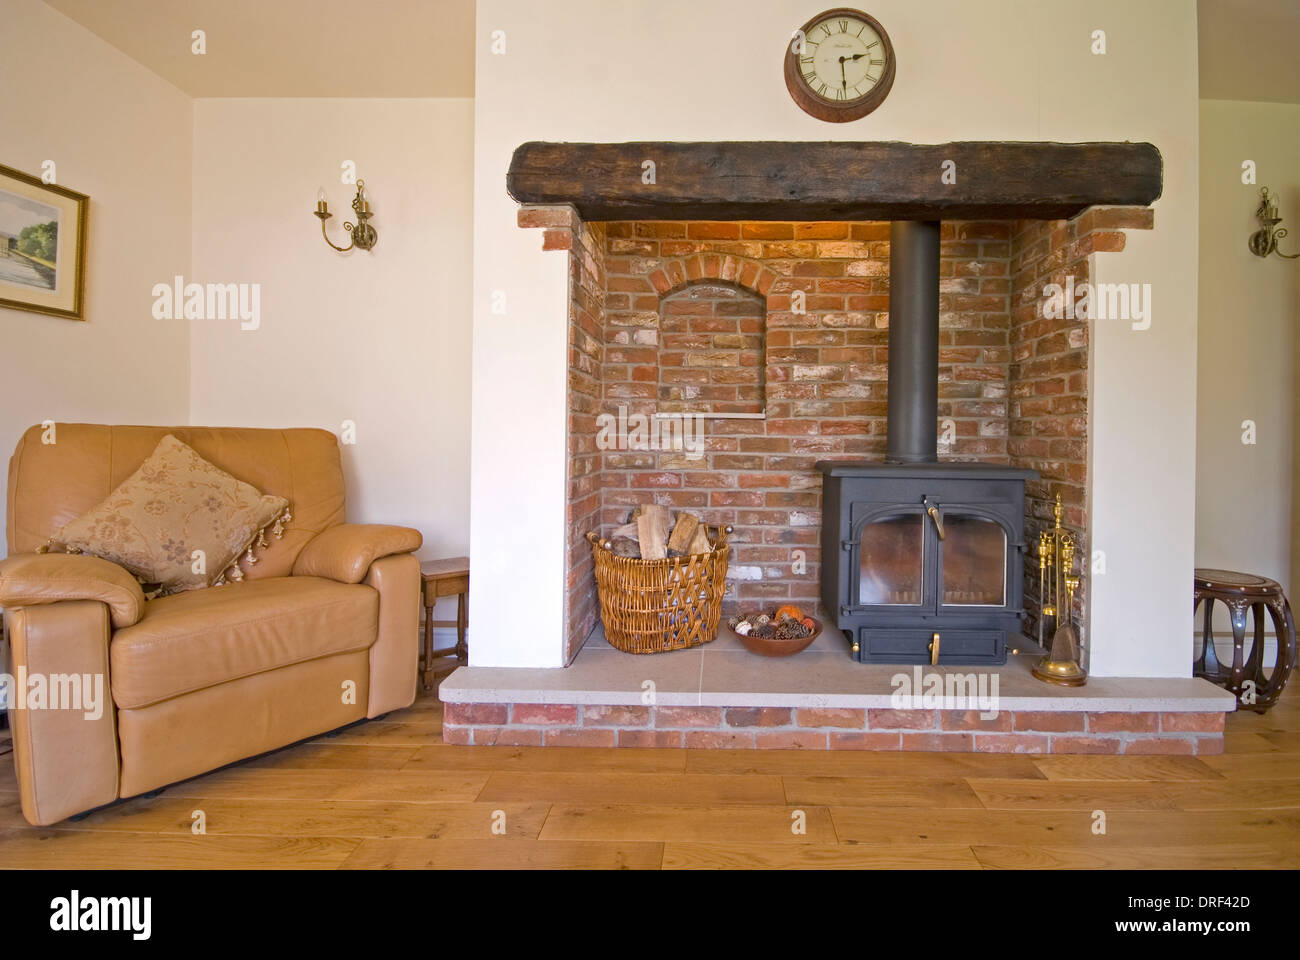 Brick Fireplace With Wood Burning Stove And Leather